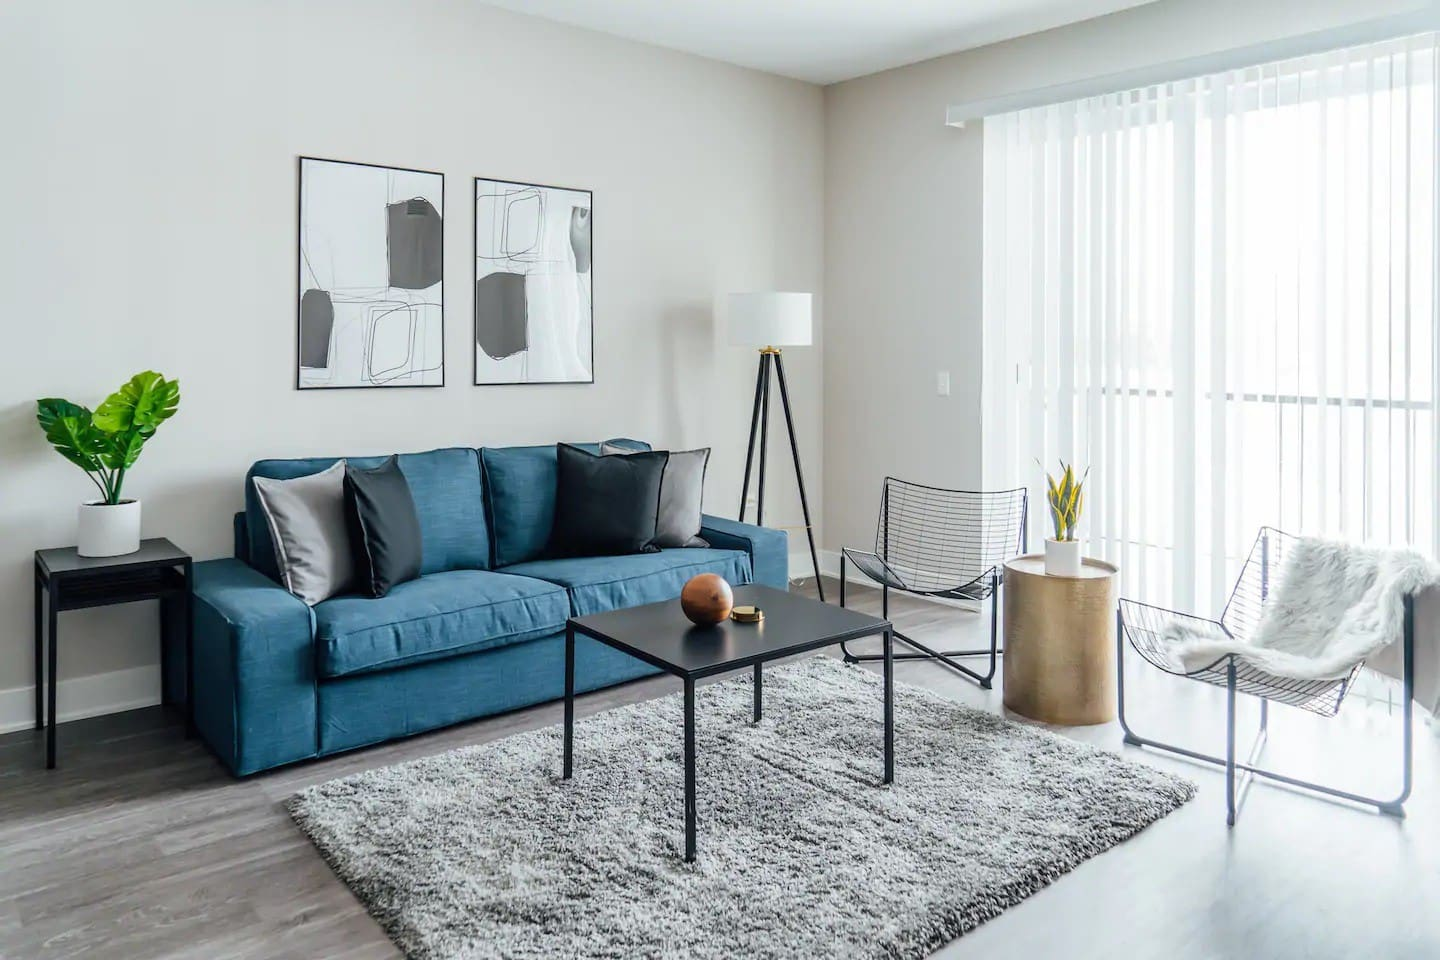 The photos are only placeholders but since we have the same interior designer who beautifully transforms all our units into a homey haven, trust us that the photos are almost the same as what this unit looks like!